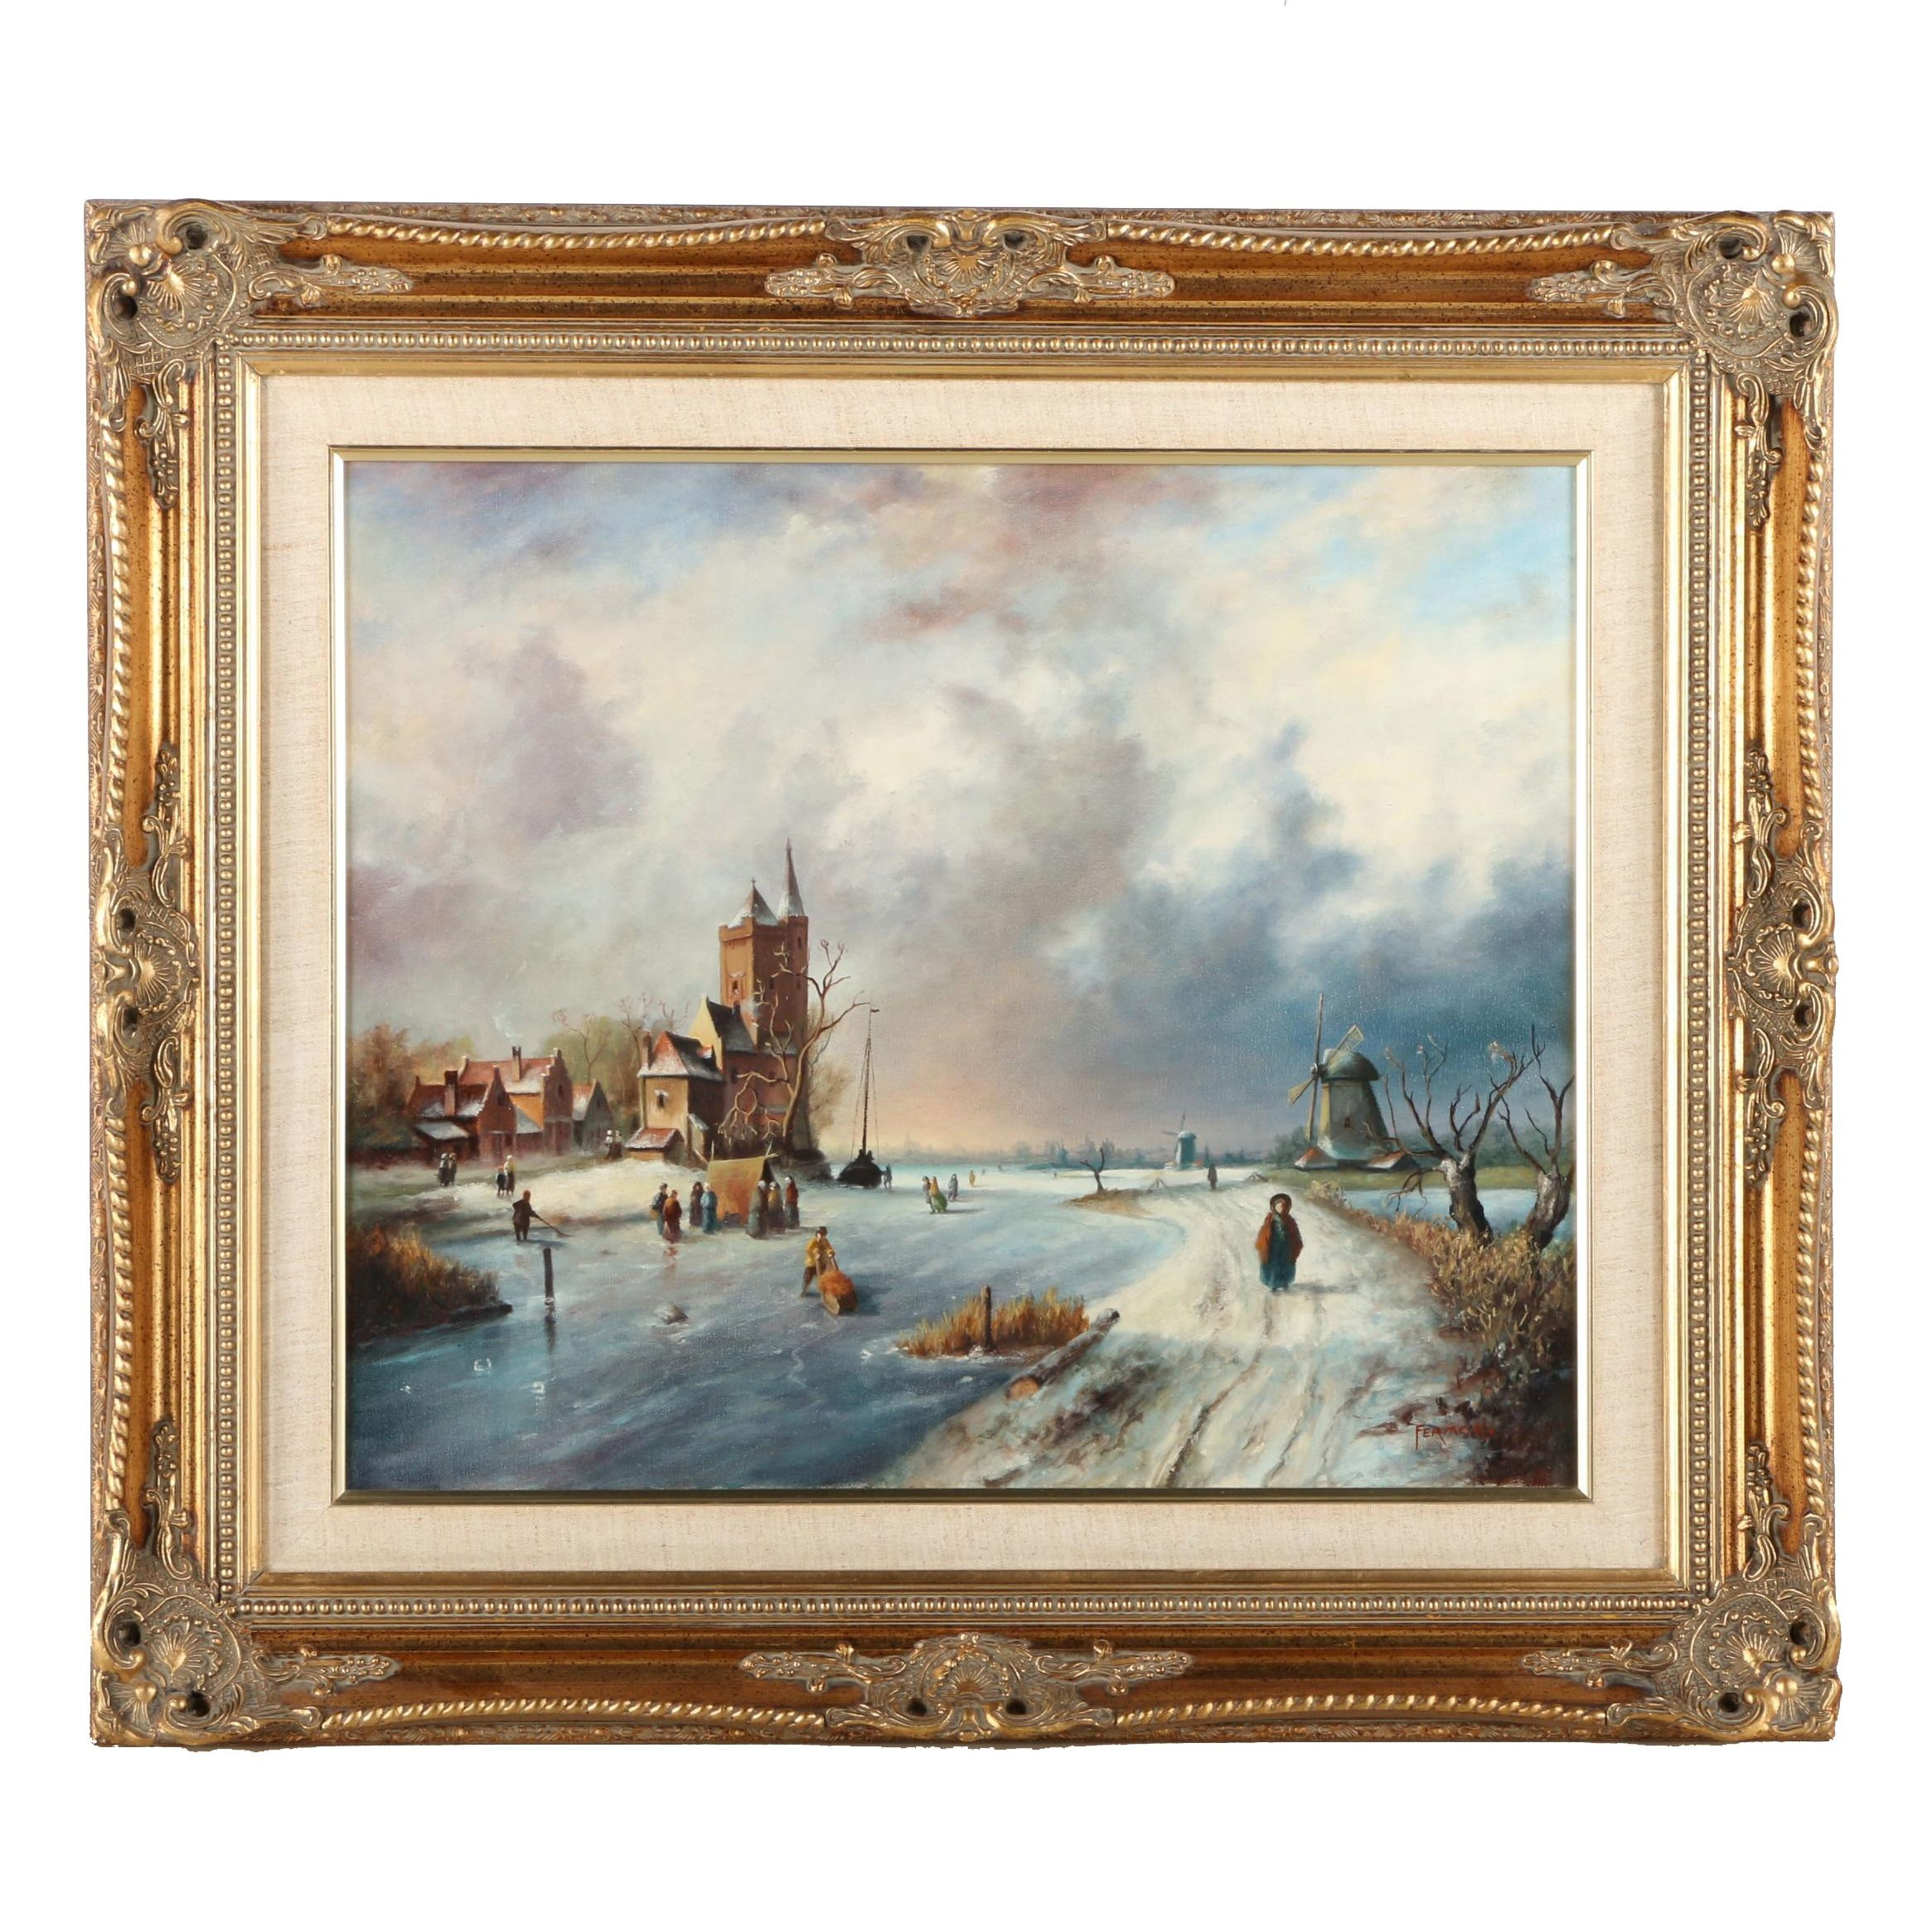 Fermor Oil Painting on Canvas of a Dutch Winter Landscape